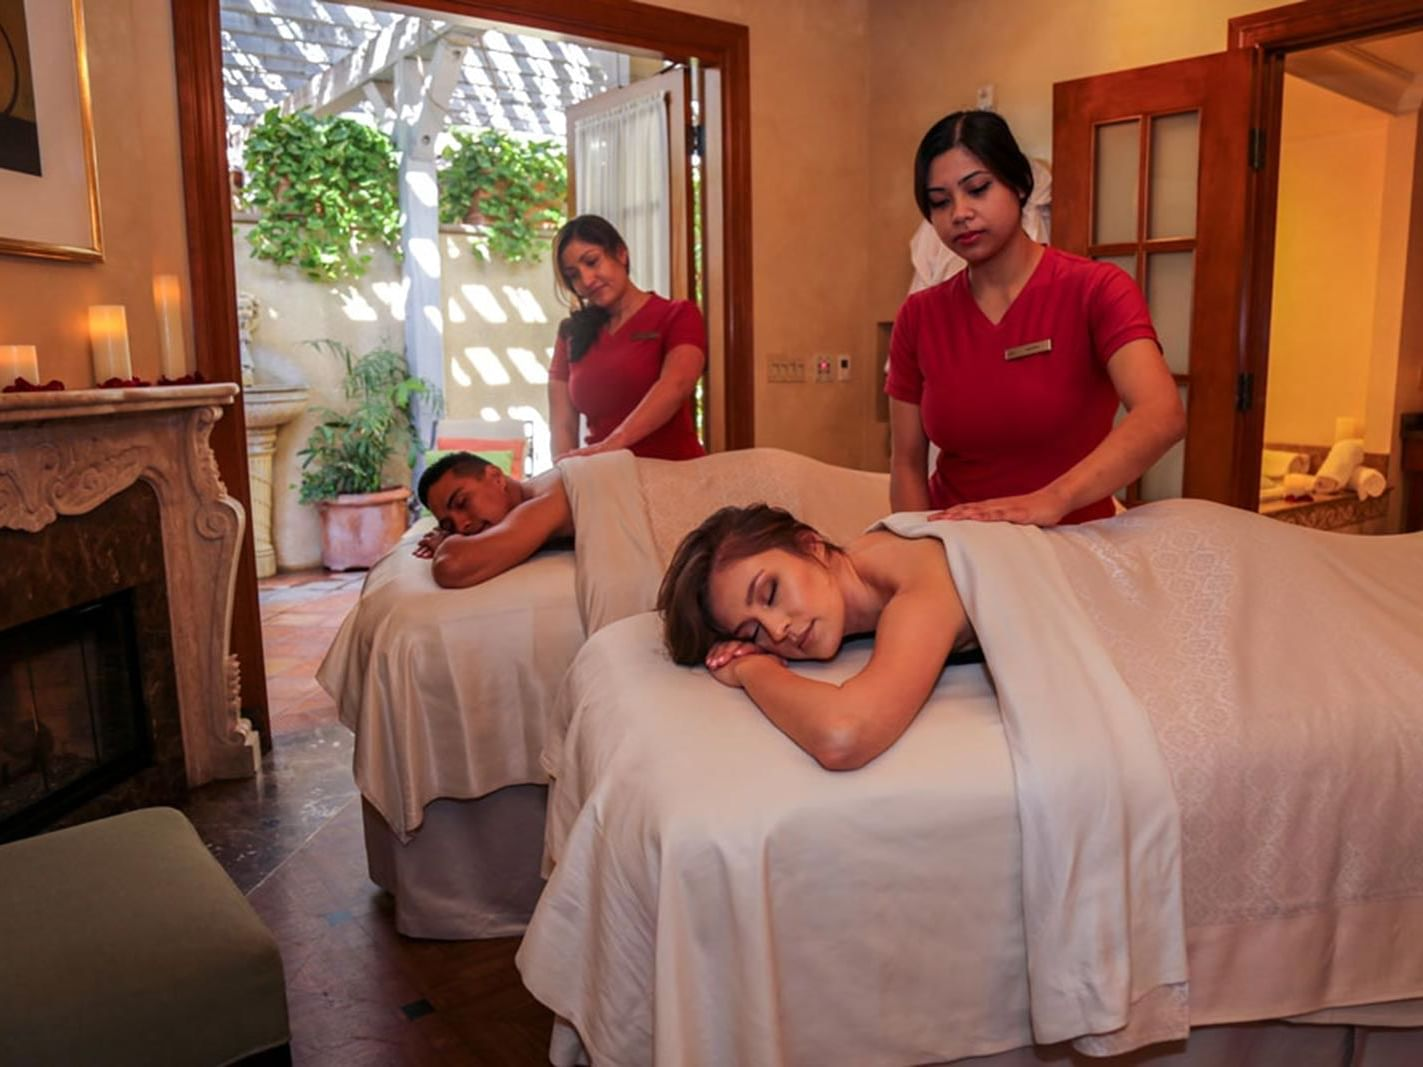 A couple getting massages at the Spa in Kelly's Spa & Boutique